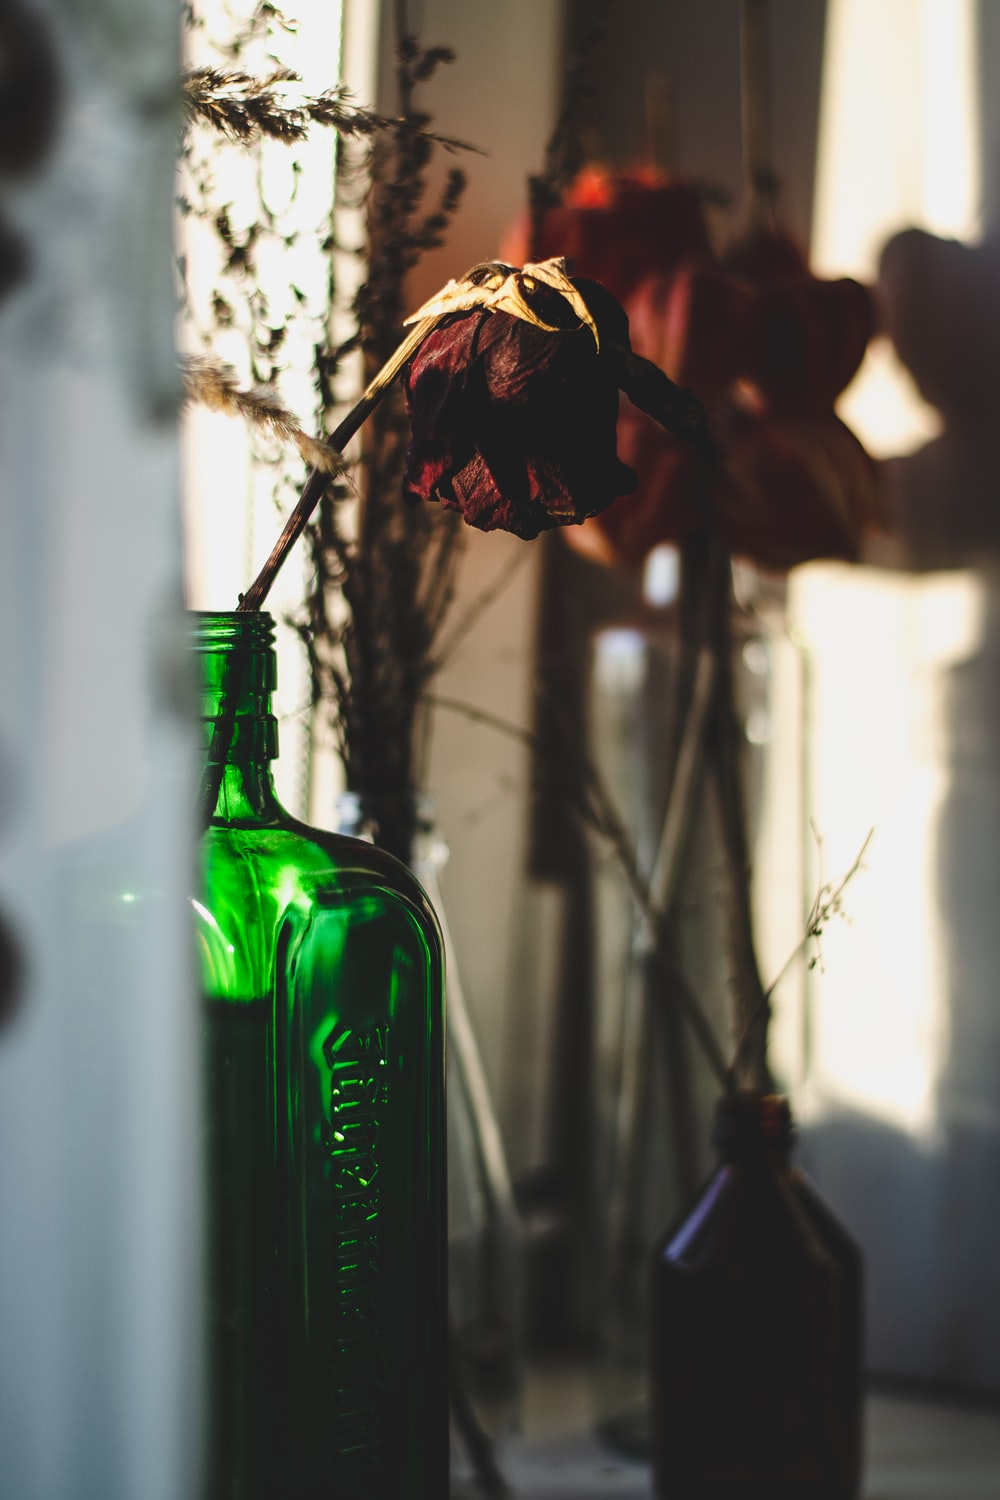 green glass bottle with brown and red flowers